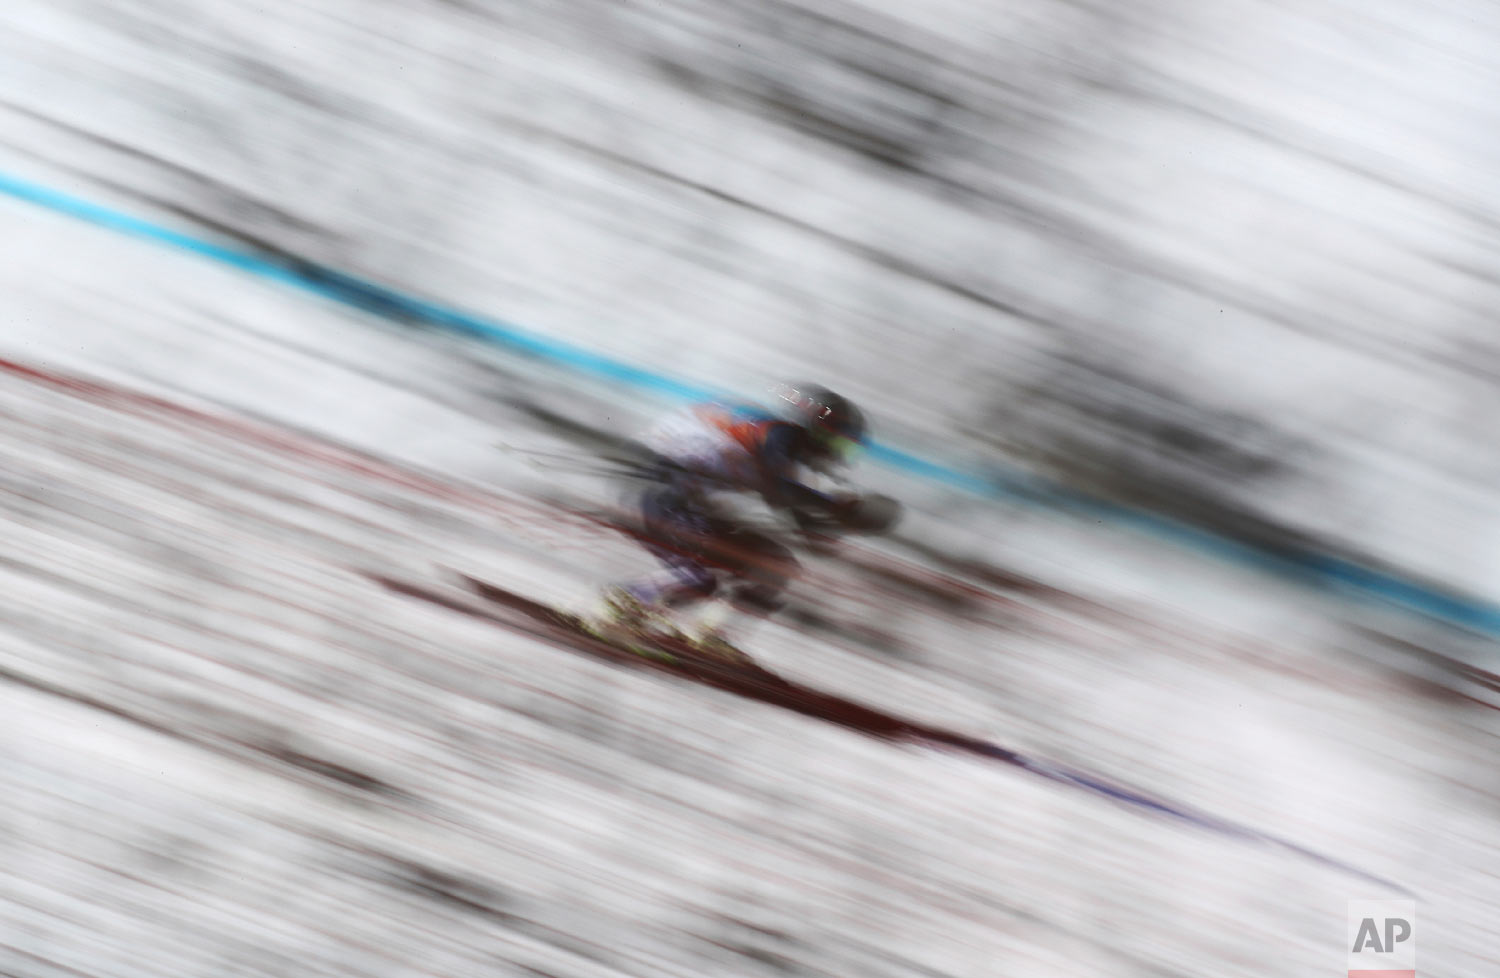 Monaco's Olivier Jenot skis during the downhill portion of the men's combined at the 2018 Winter Olympics in Jeongseon, South Korea, Tuesday, Feb. 13, 2018. (AP Photo/Alessandro Trovati)